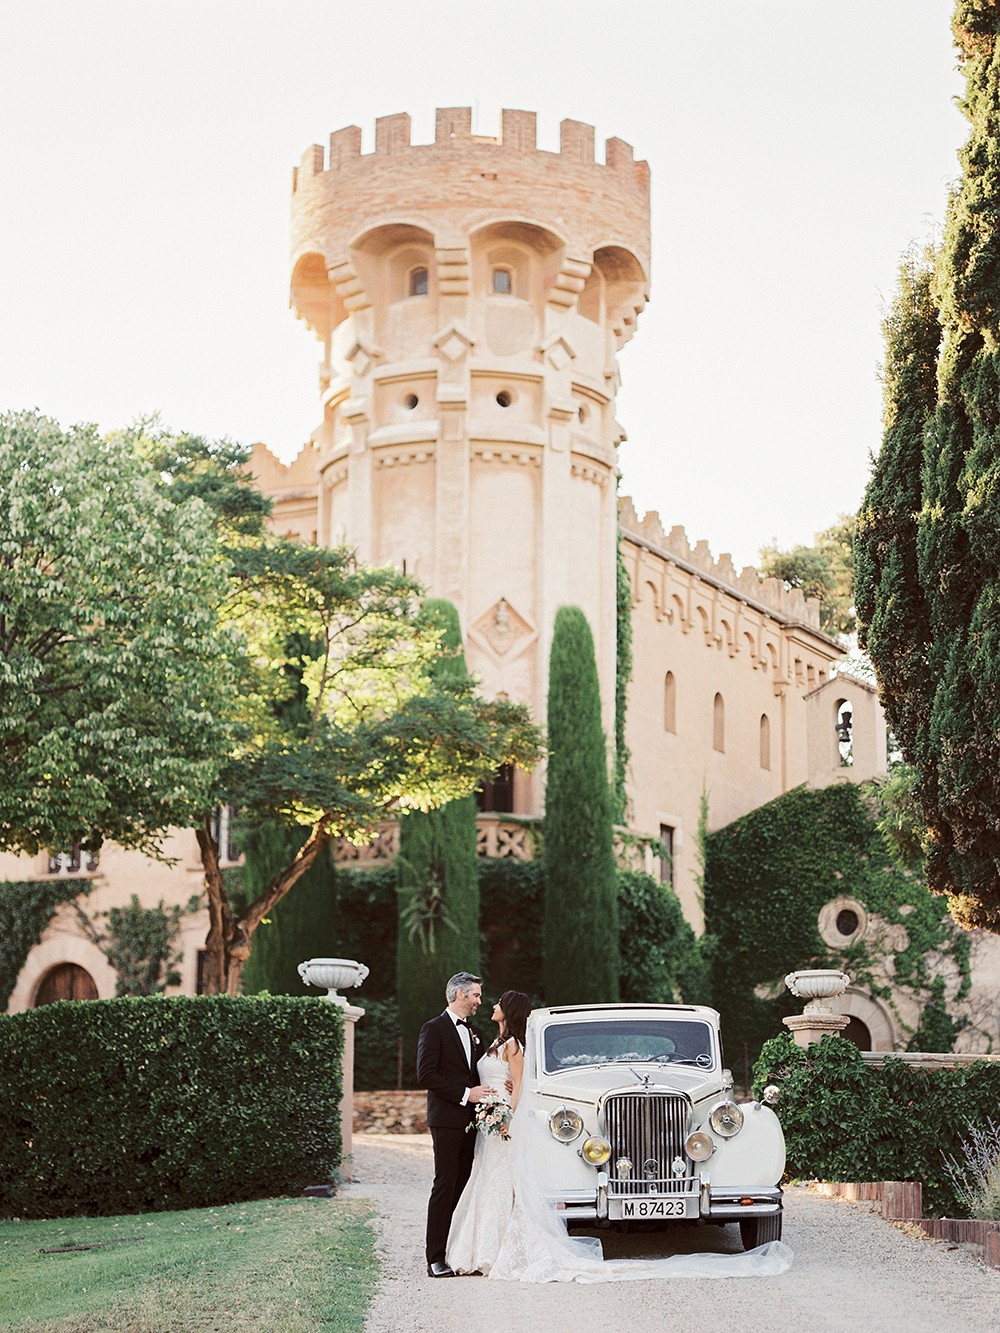 Romantic Monochromatic Real Wedding in Barcelona